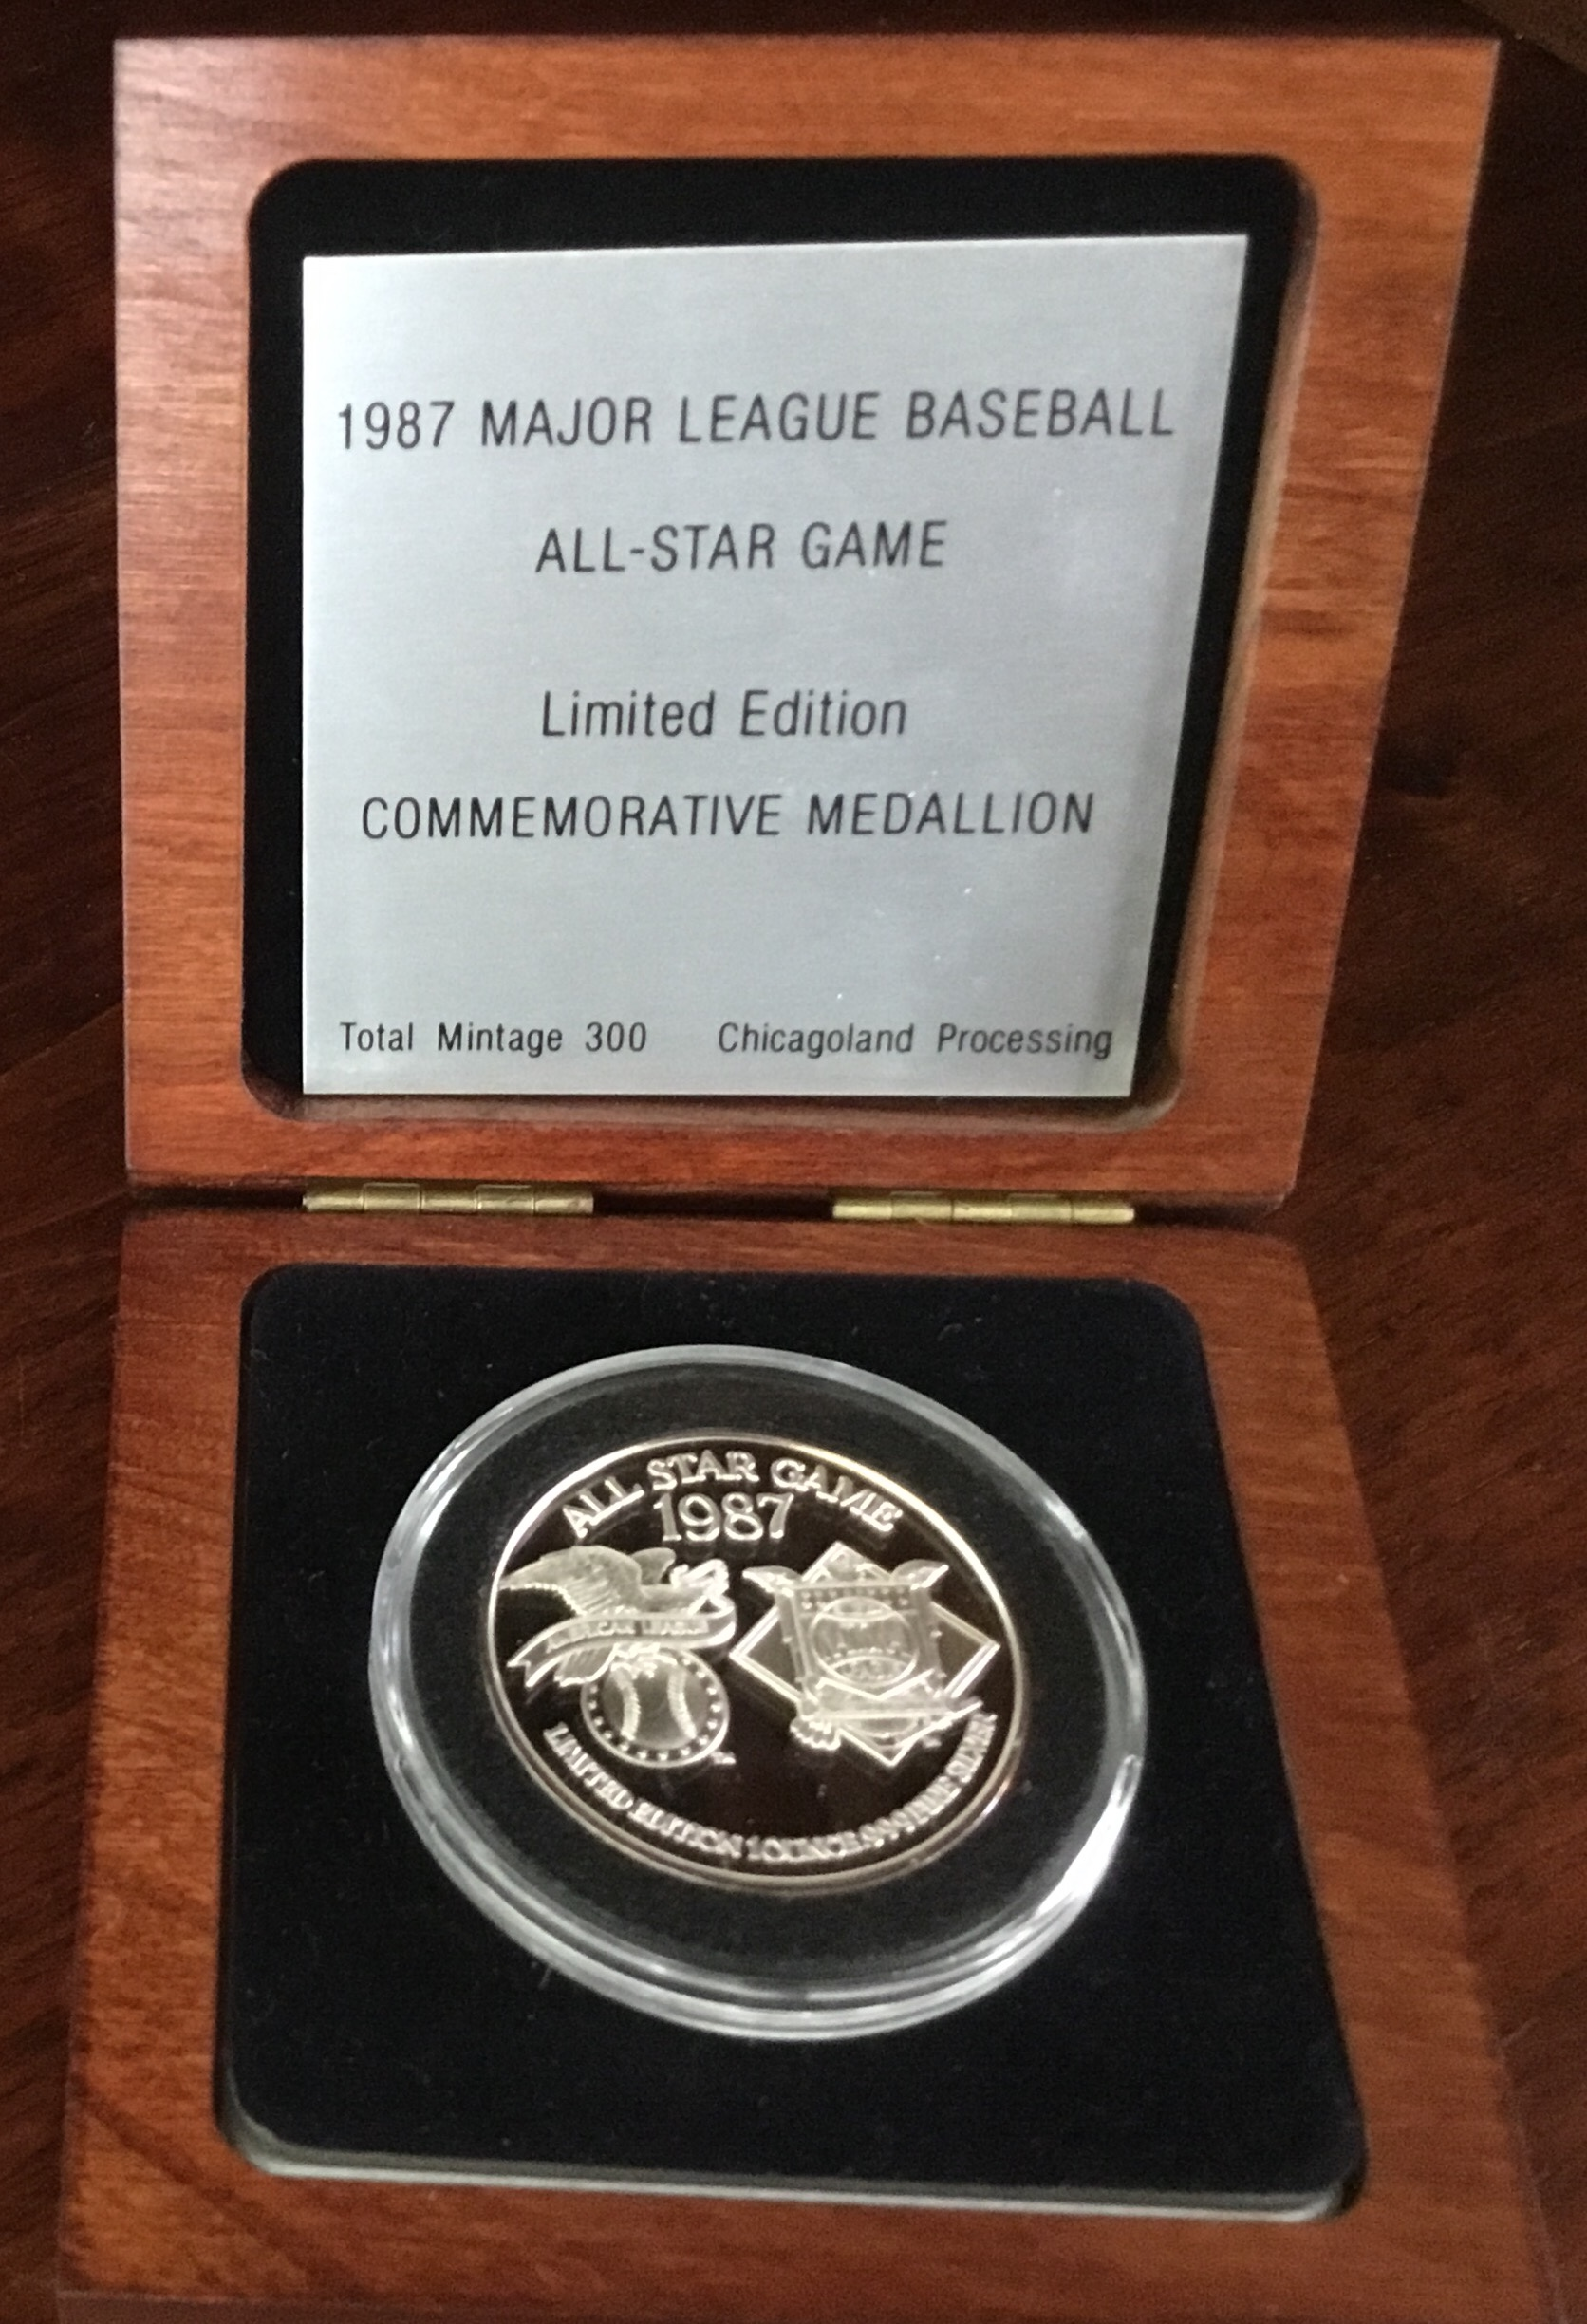 Commemorative 1987 Major League Baseball Medallion